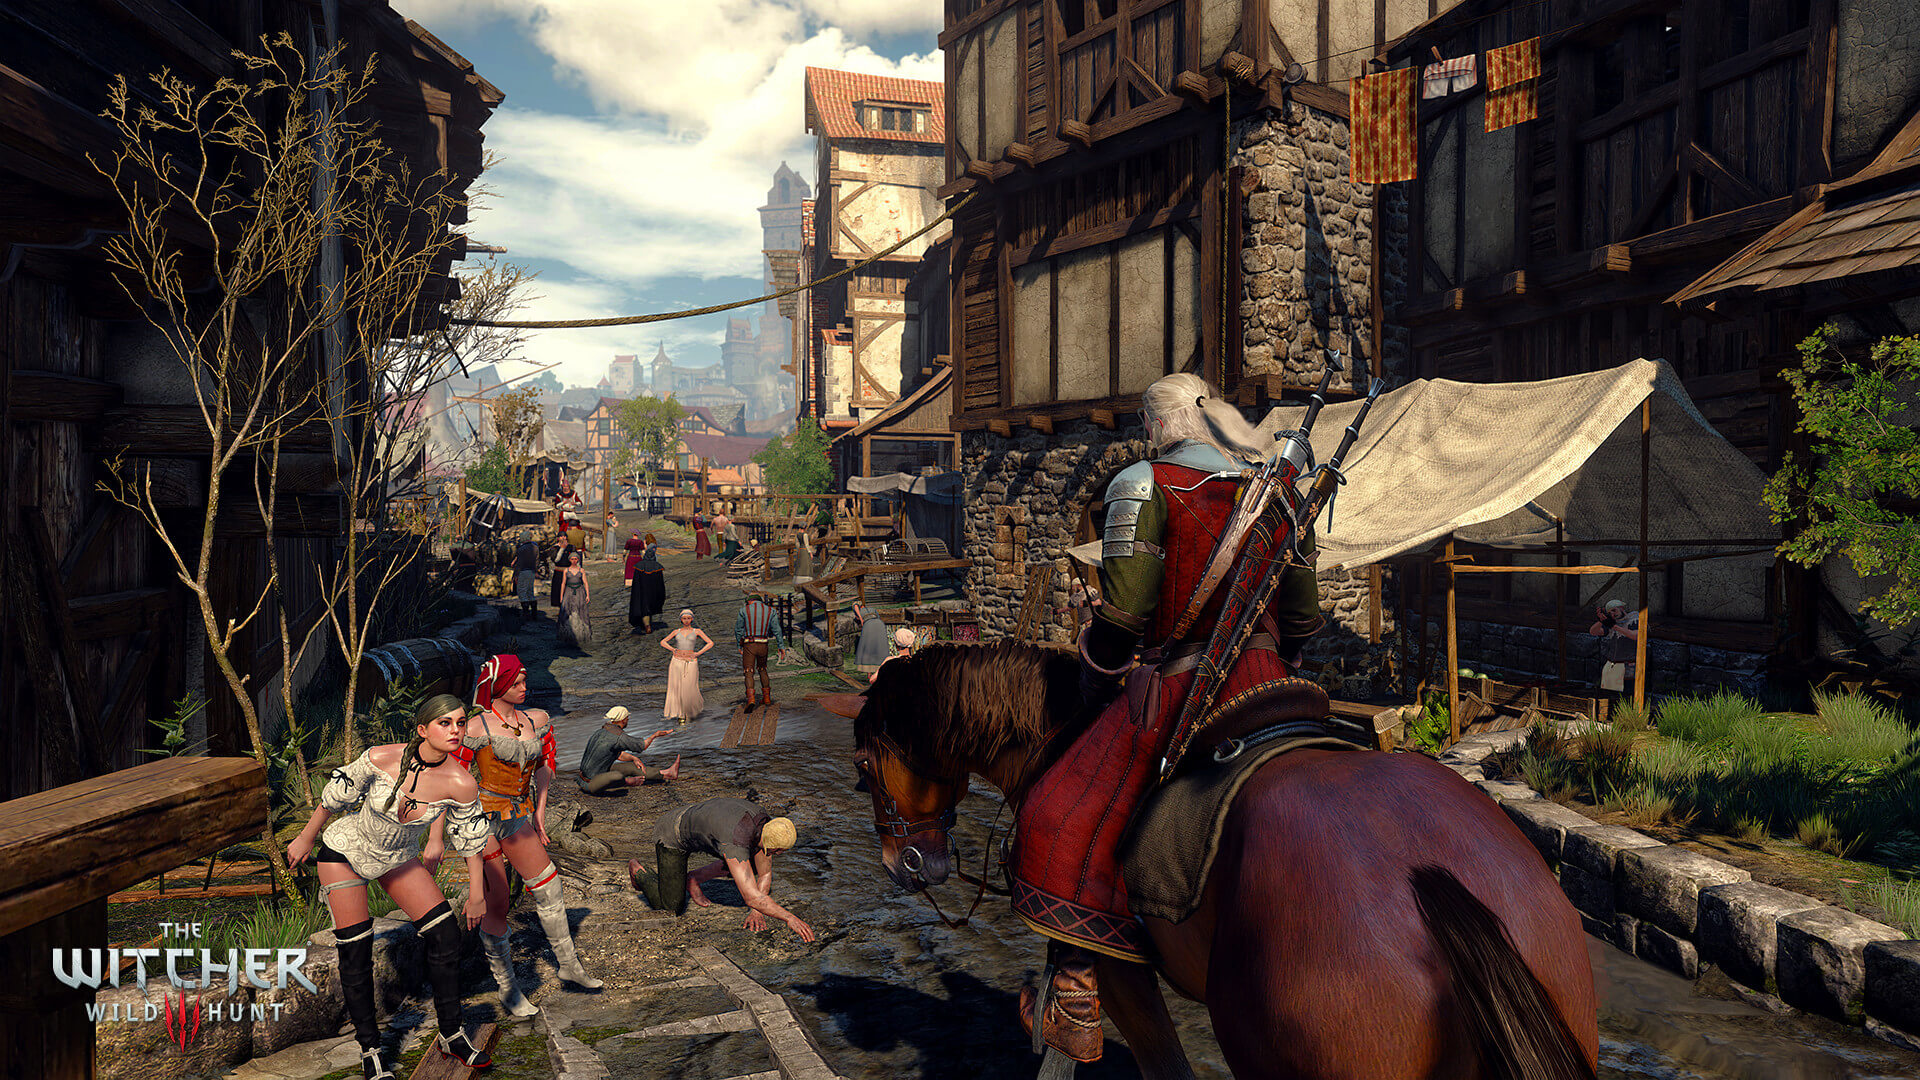 The Witcher 3: Wild Hunt for PS4, XB1, PC Reviews - OpenCritic